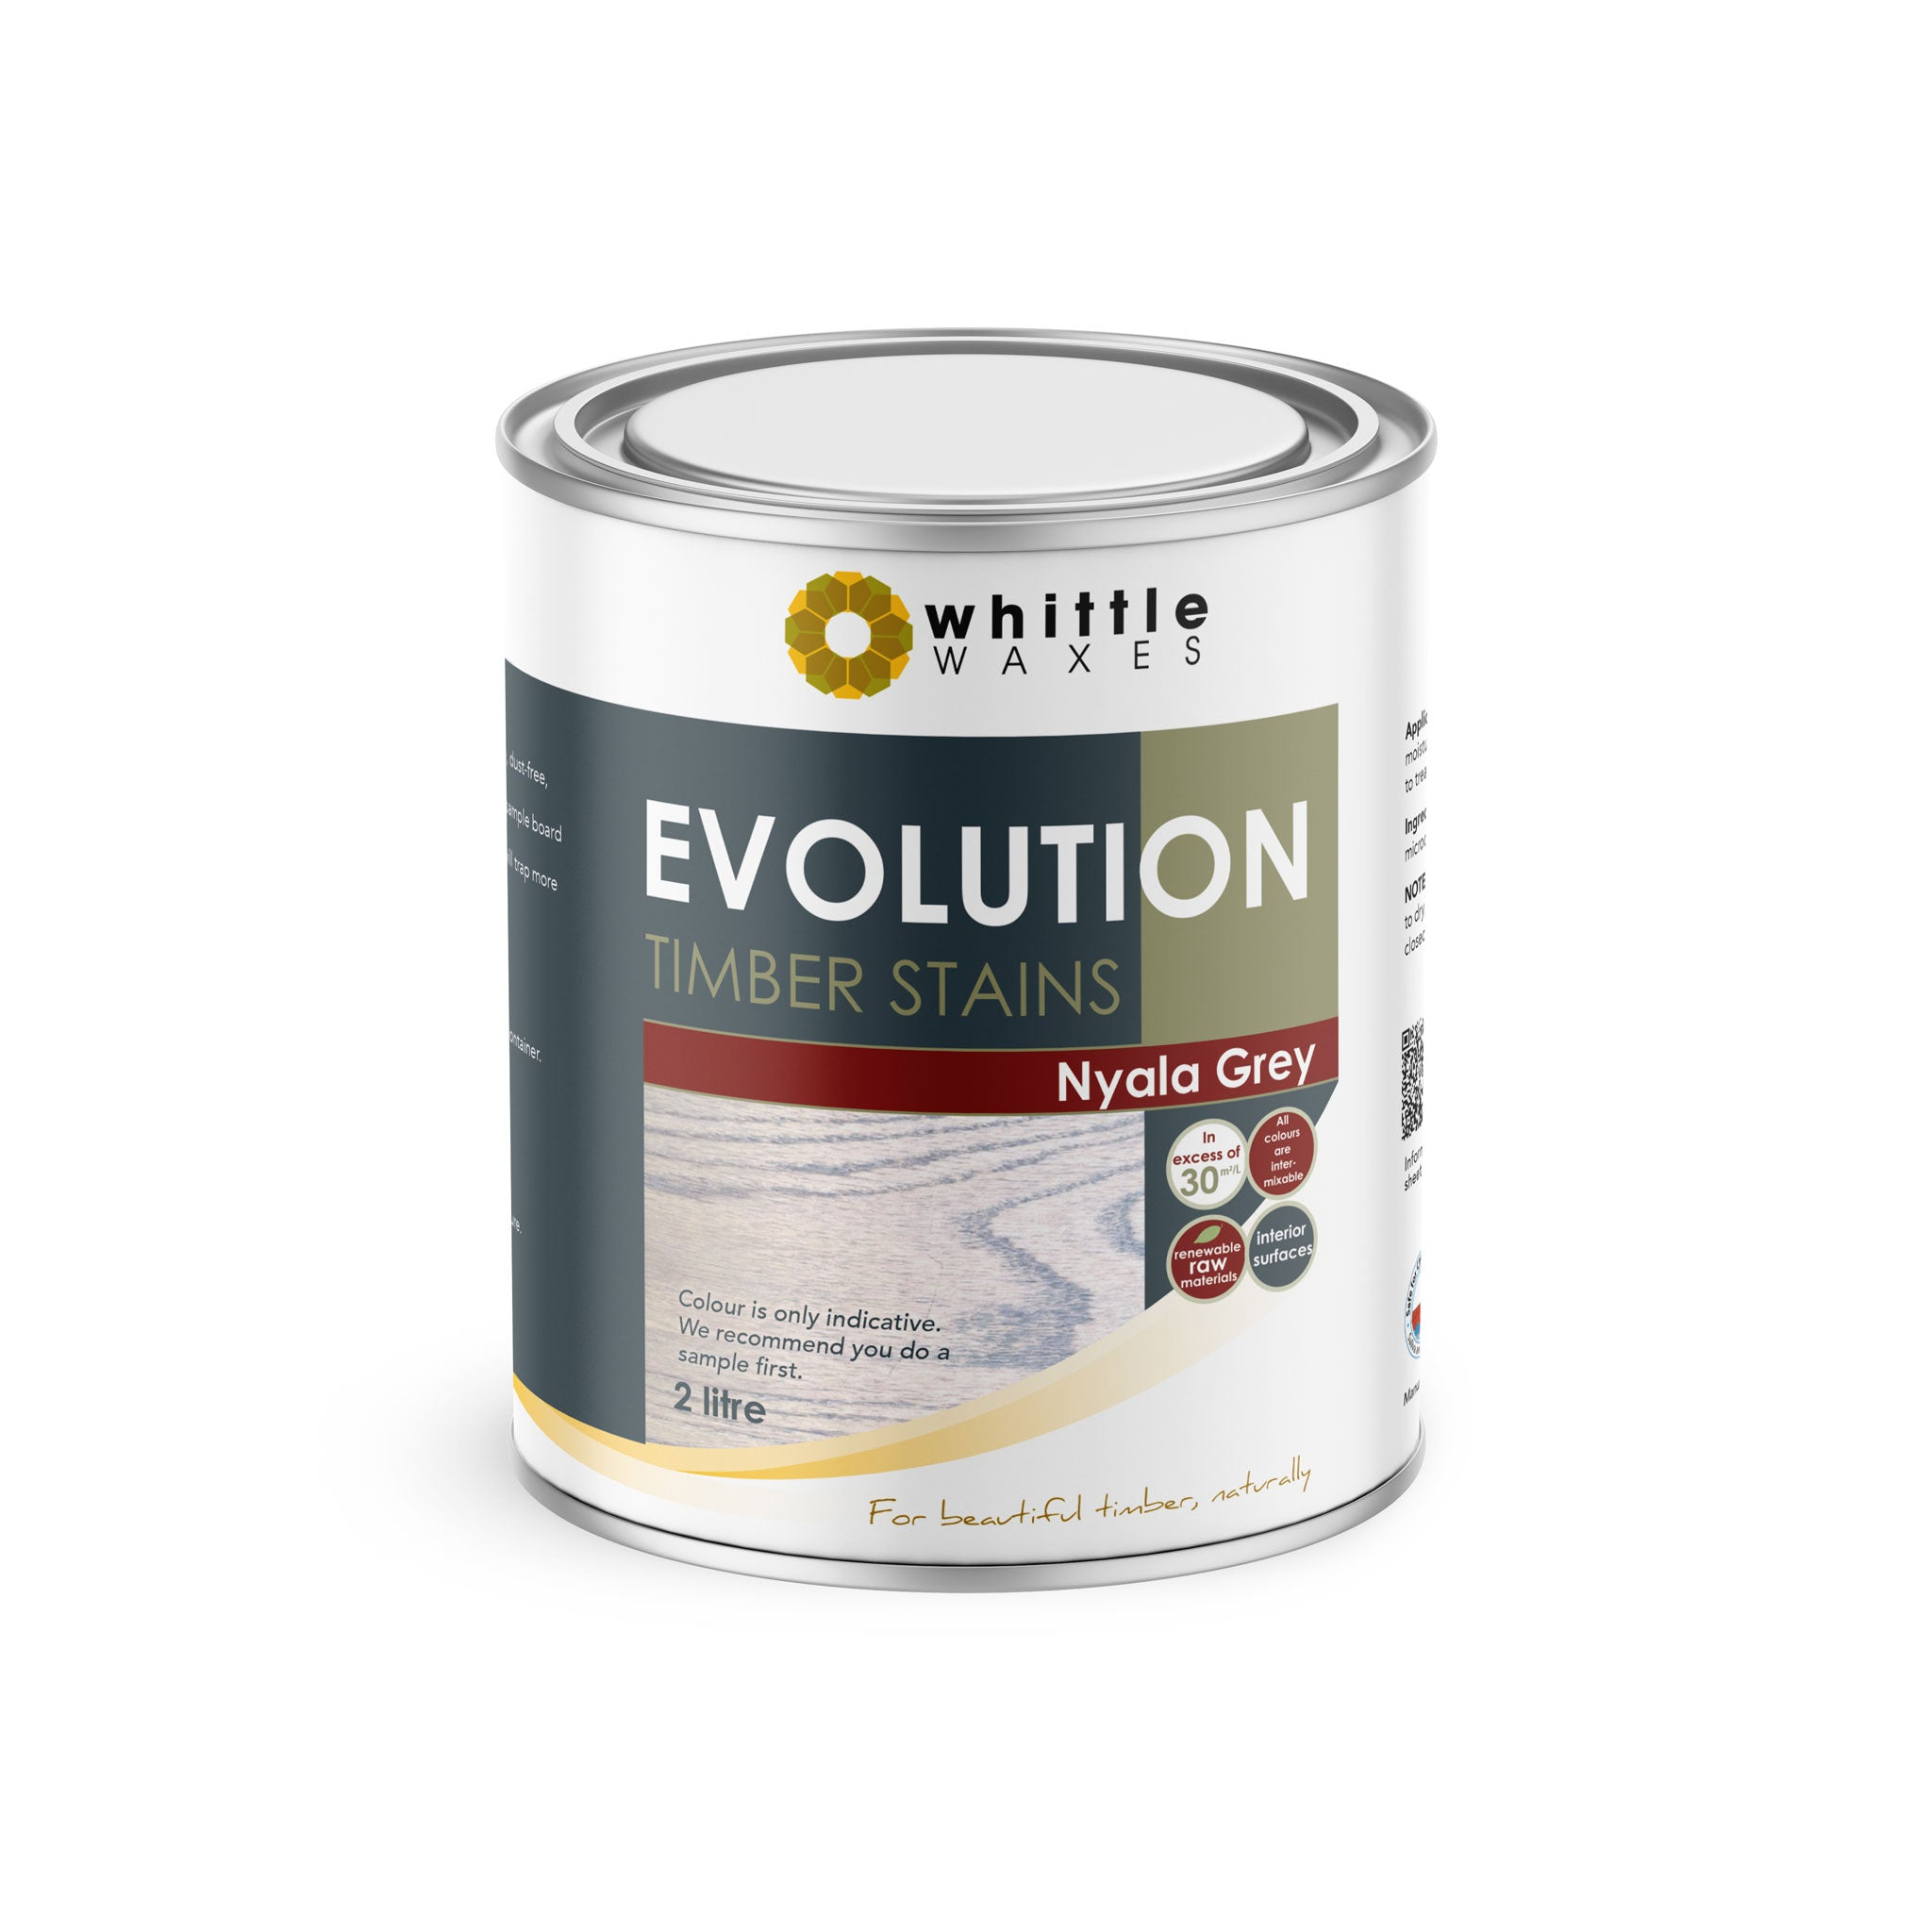 Whittle Waxes Evolution Colours (Nyala Grey) - quality timber stain - 2 Litre